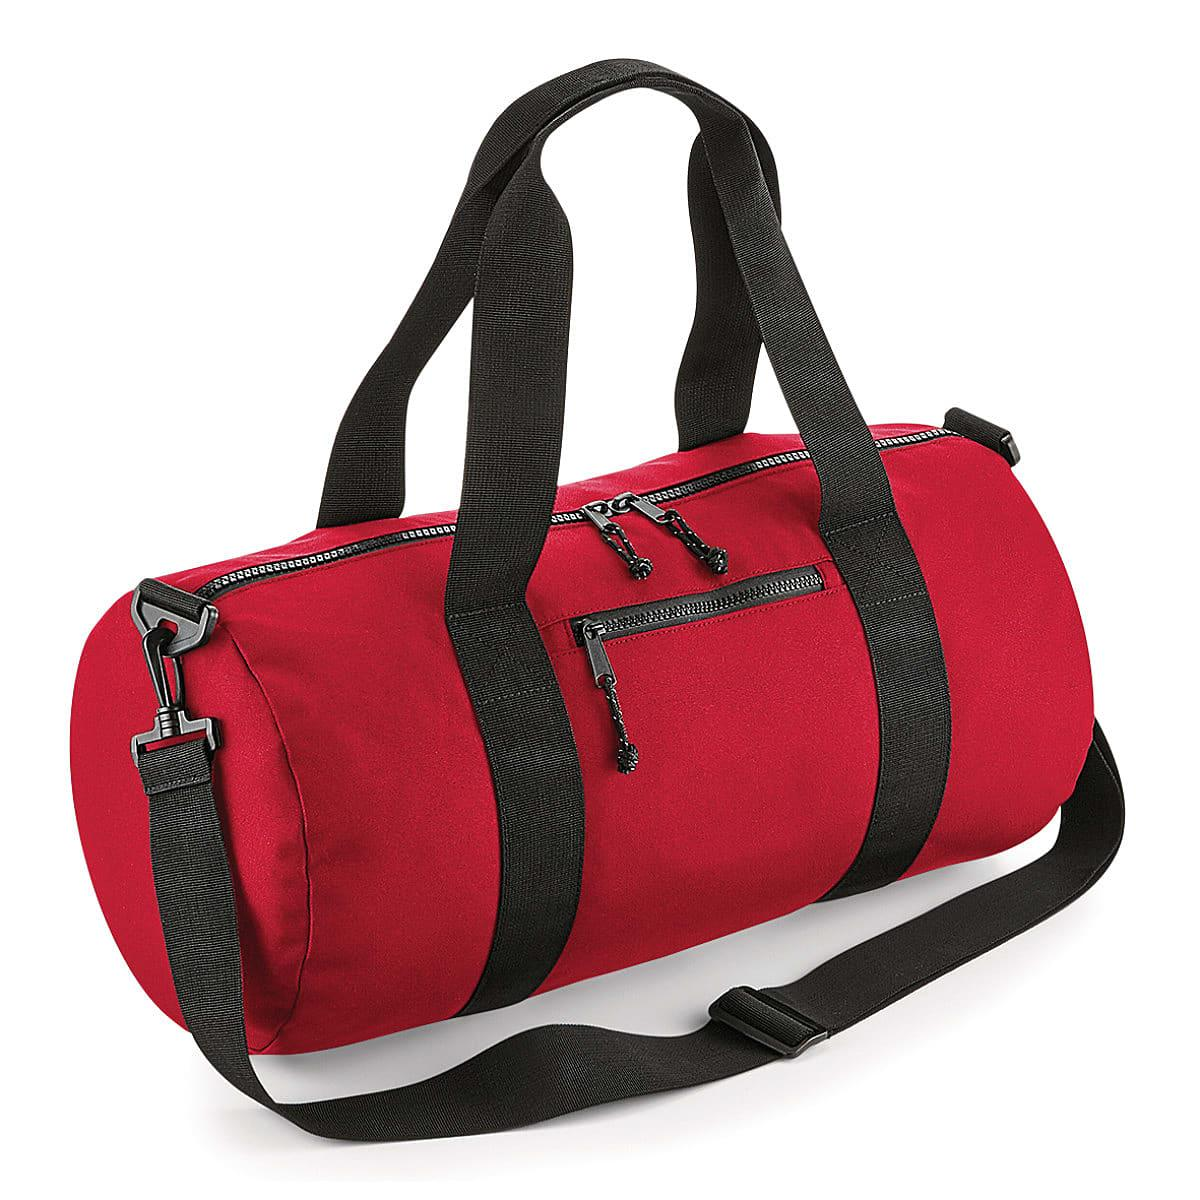 Bagbase Recycled Barrel Bag in Classic Red (Product Code: BG284)